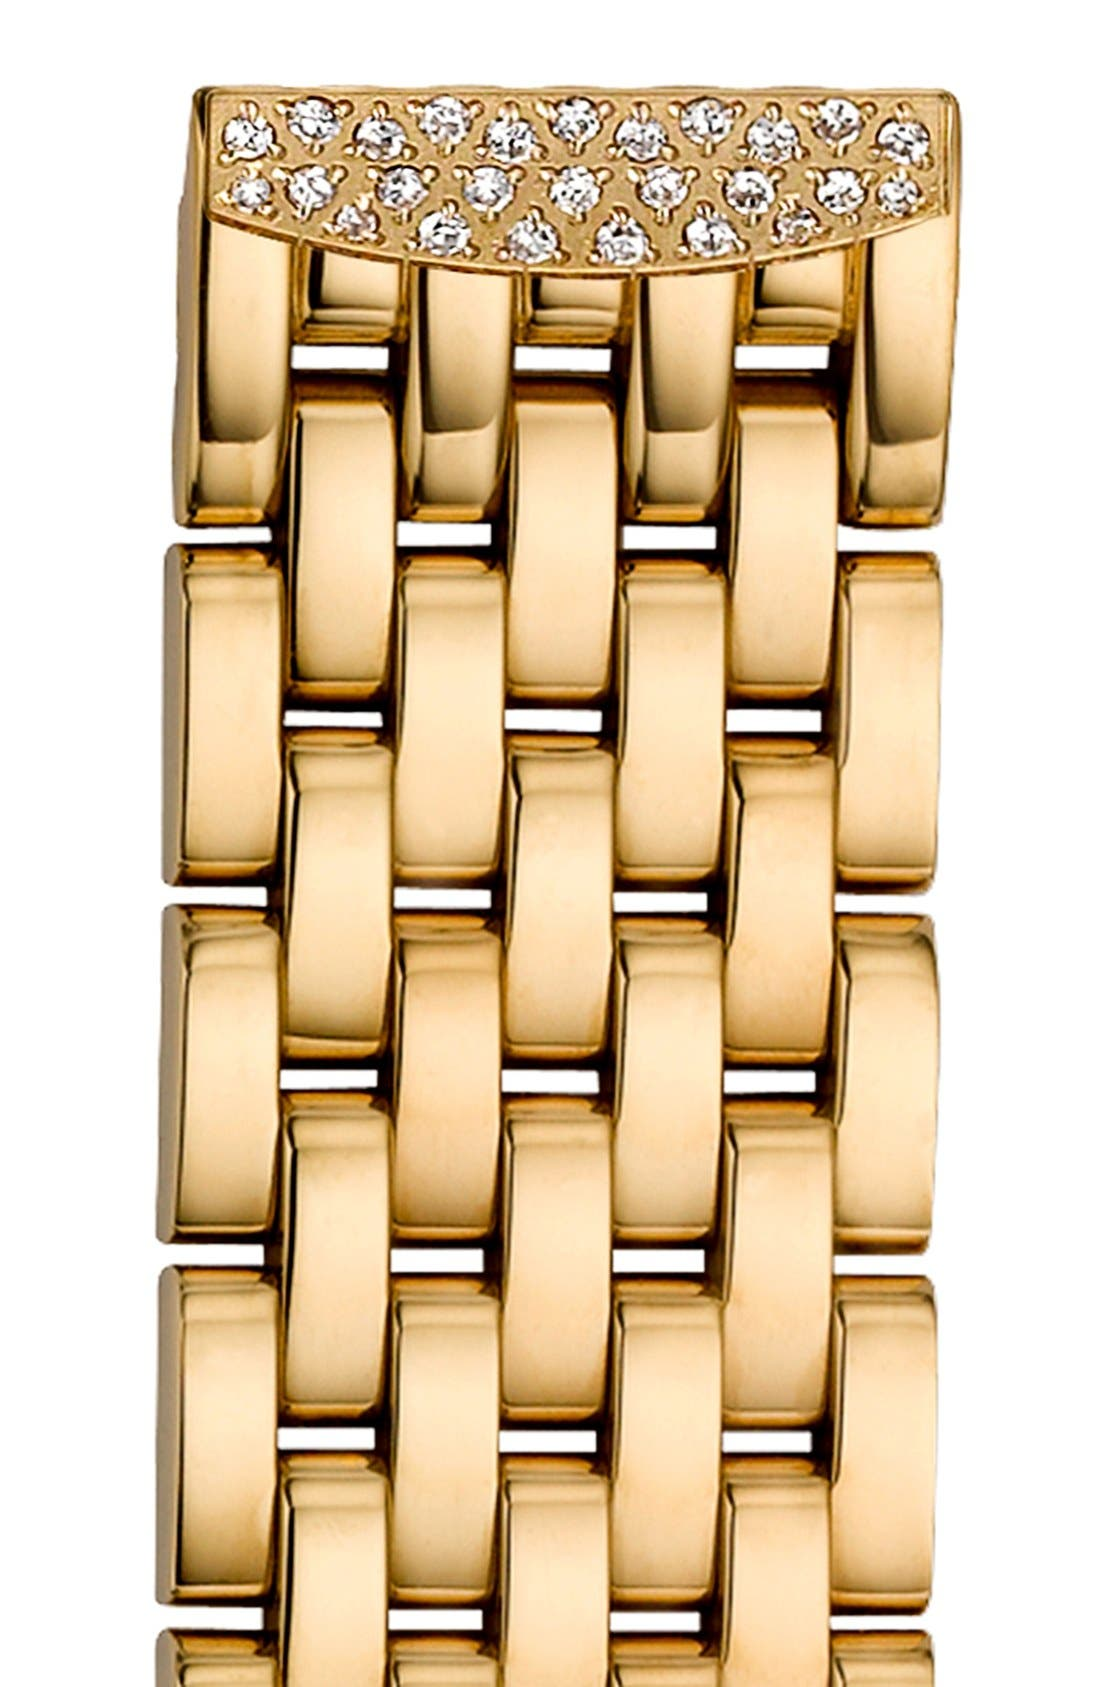 Alternate Image 1 Selected - MICHELE 'Urban Mini Diamond' 16mm Gold Plated Bracelet Watchband